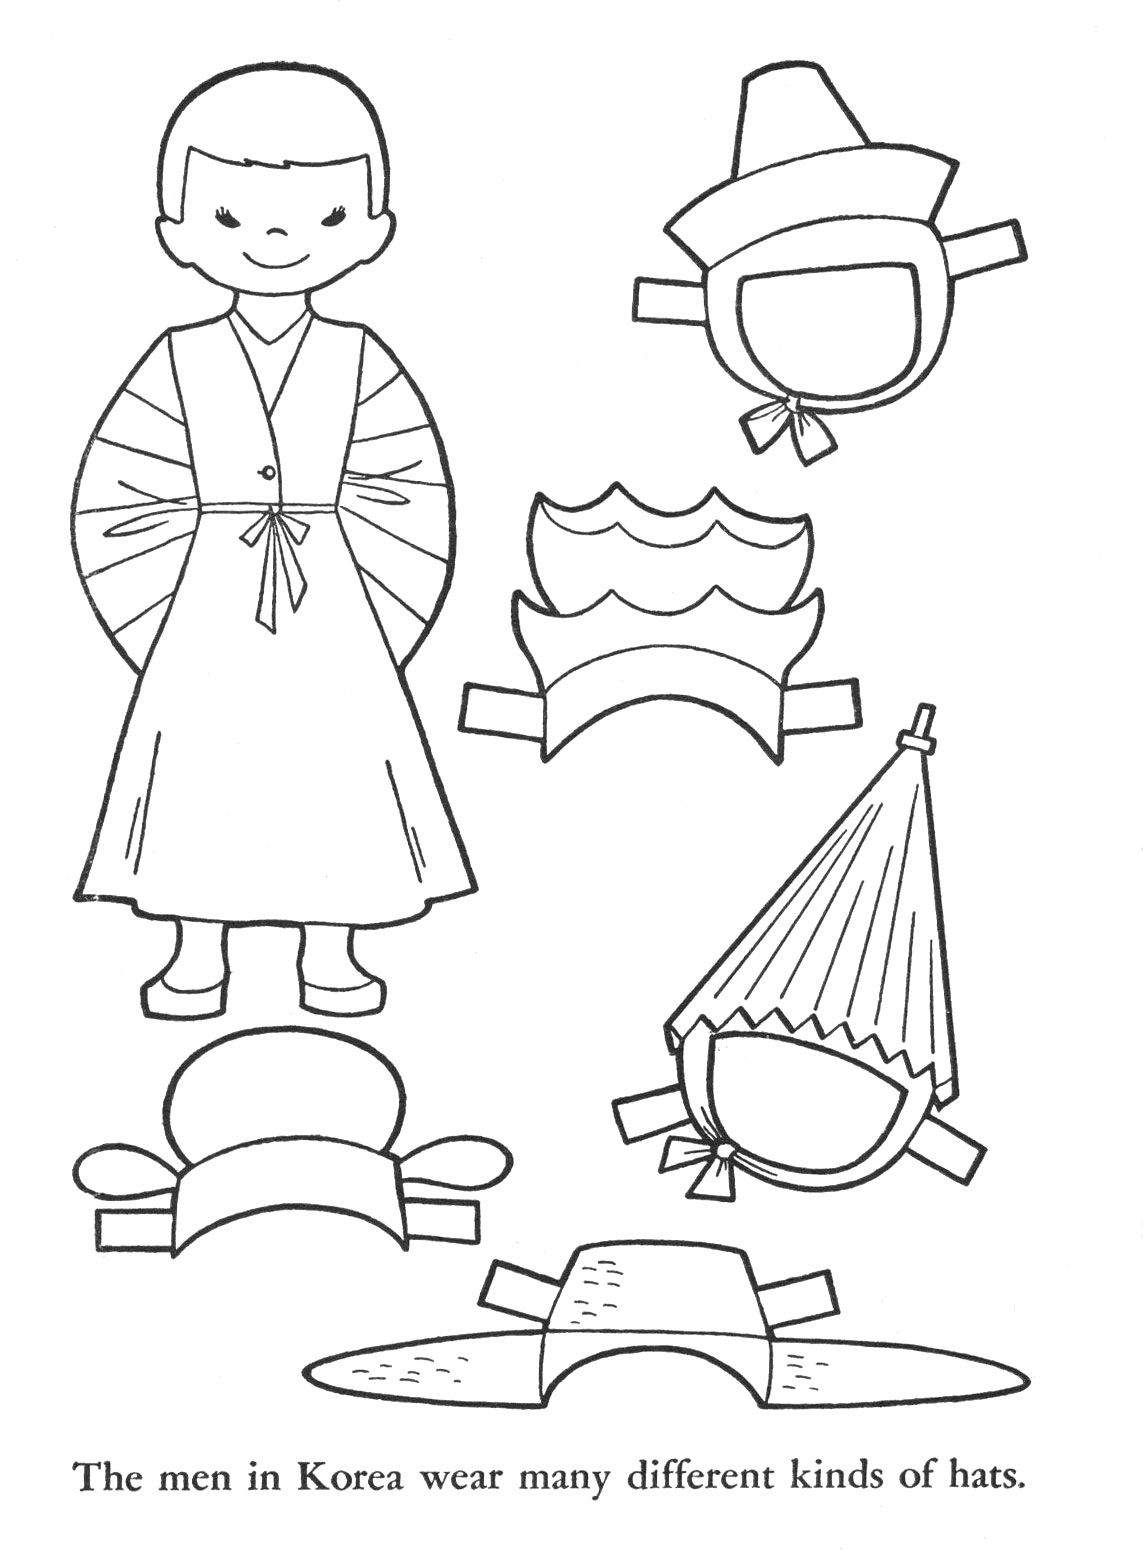 South korea coloring book - Korea Doll Http Qisforquilter Com Wp Content Uploads 2012 11 Korea 2 Jpg Color Book Pinterest Korea Dolls And Montessori